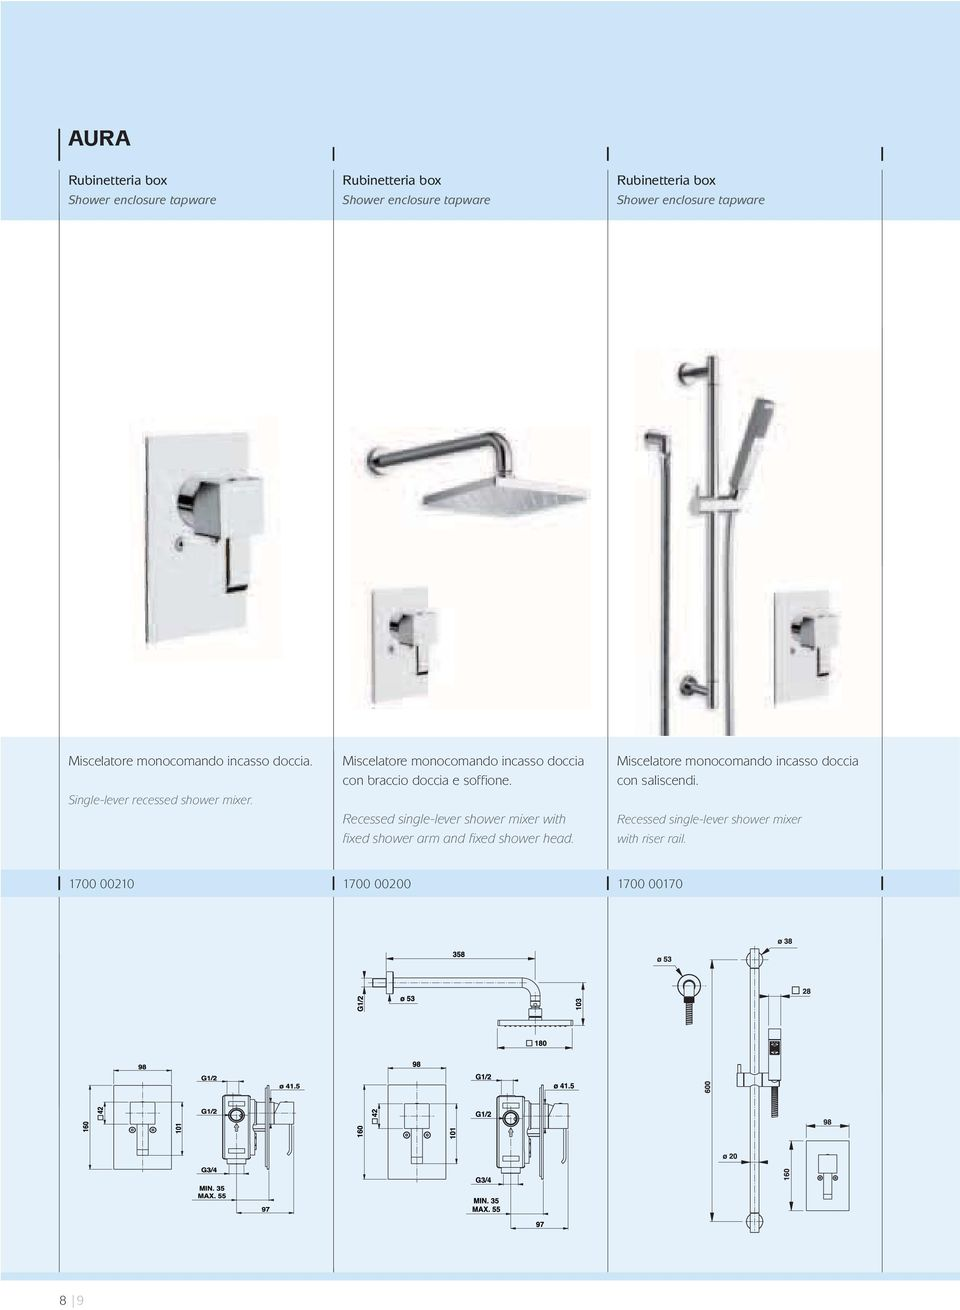 Recessed single-lever shower mixer with fixed shower arm and fixed shower head.